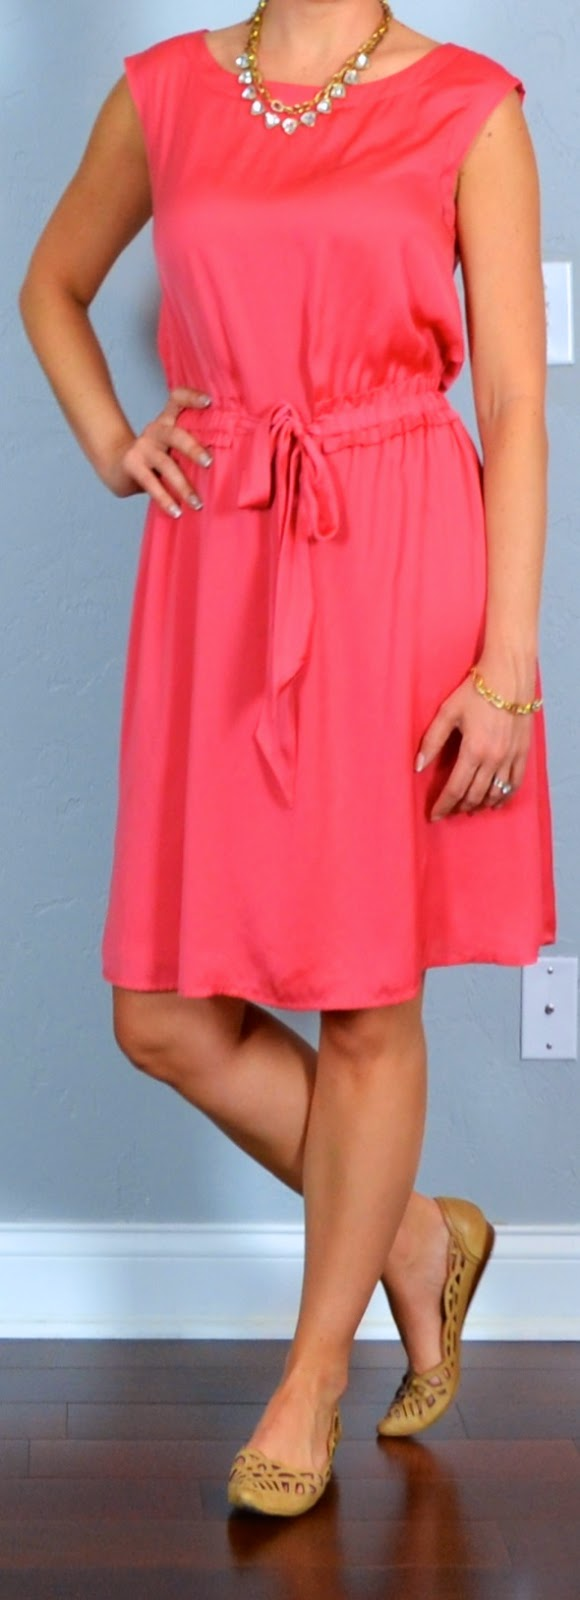 98089-peachdress